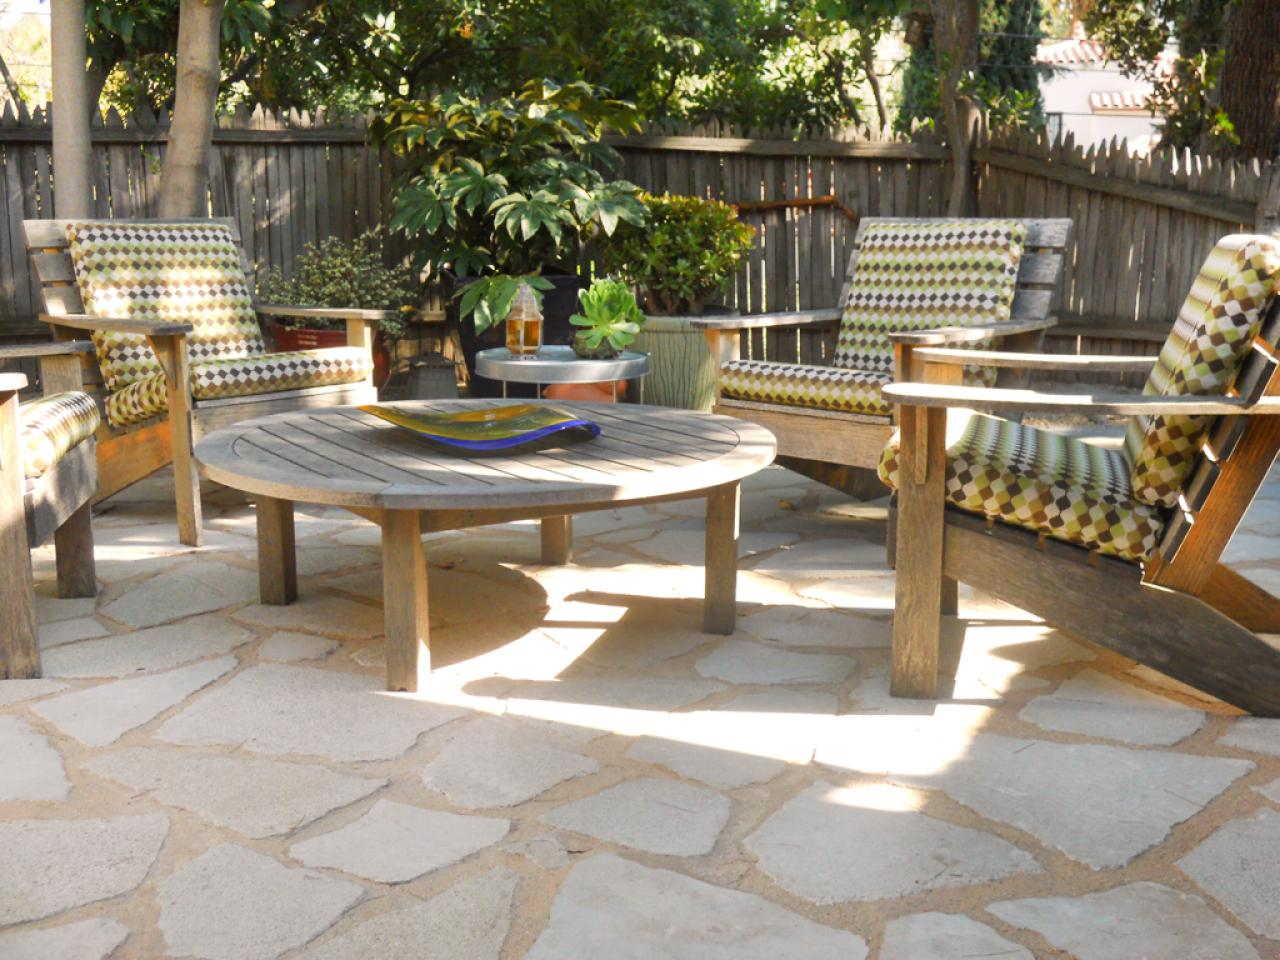 choosing materials for your patio | hgtv - Brick Stone Patio Designs